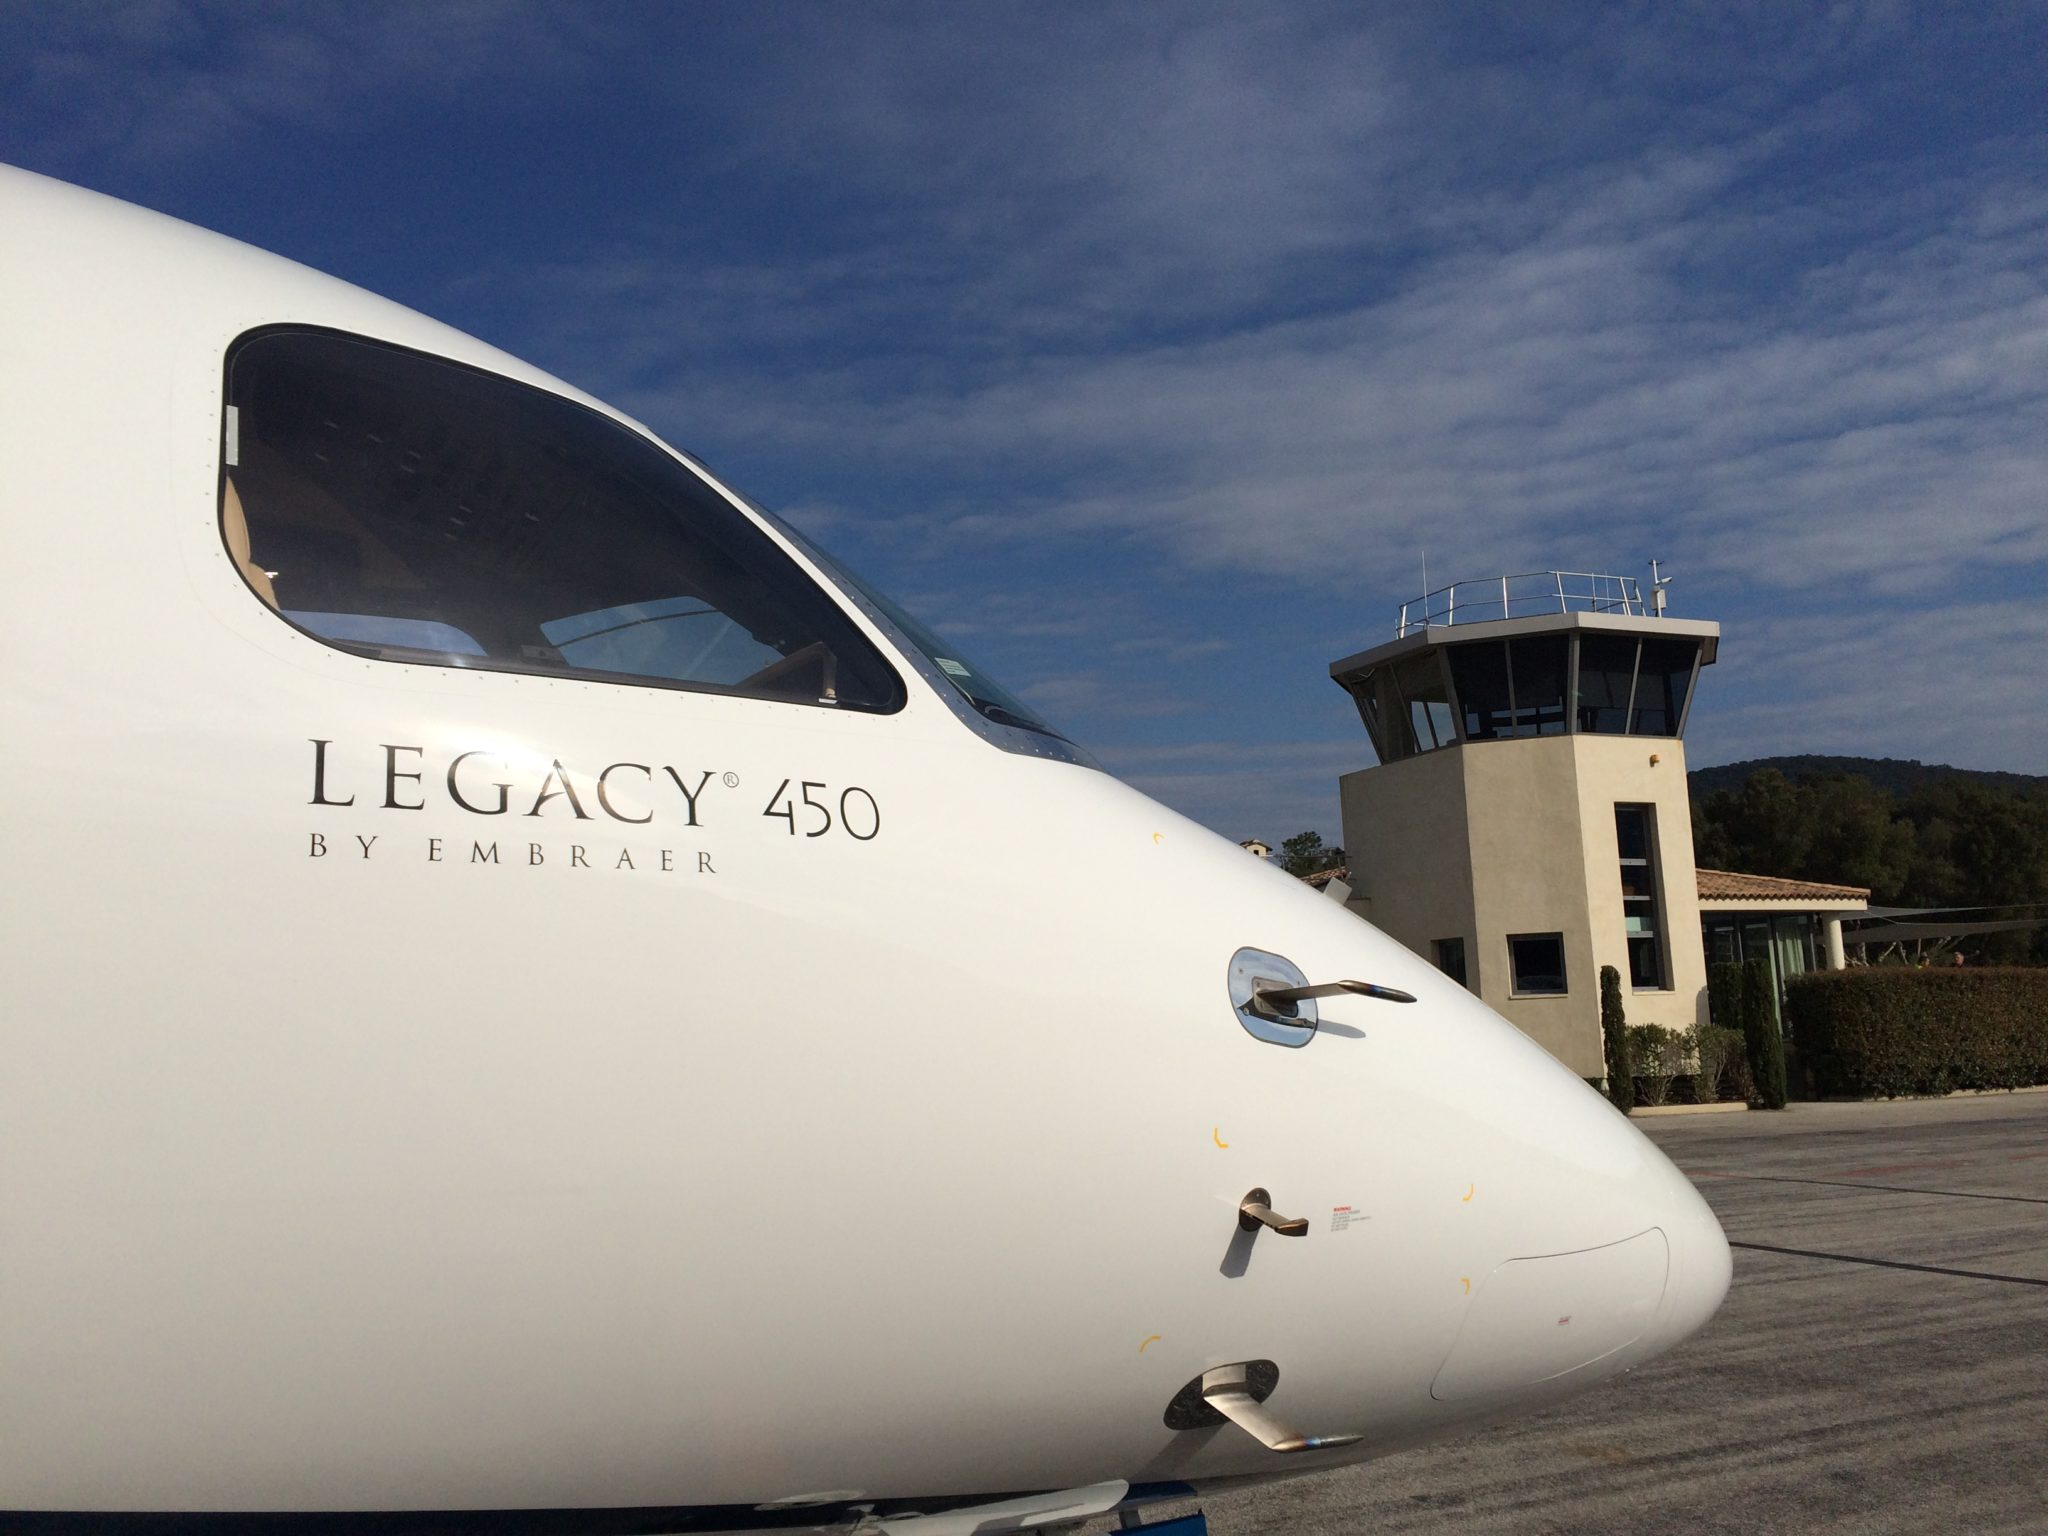 Legacy 450 to become largest aircraft at La Mole after key